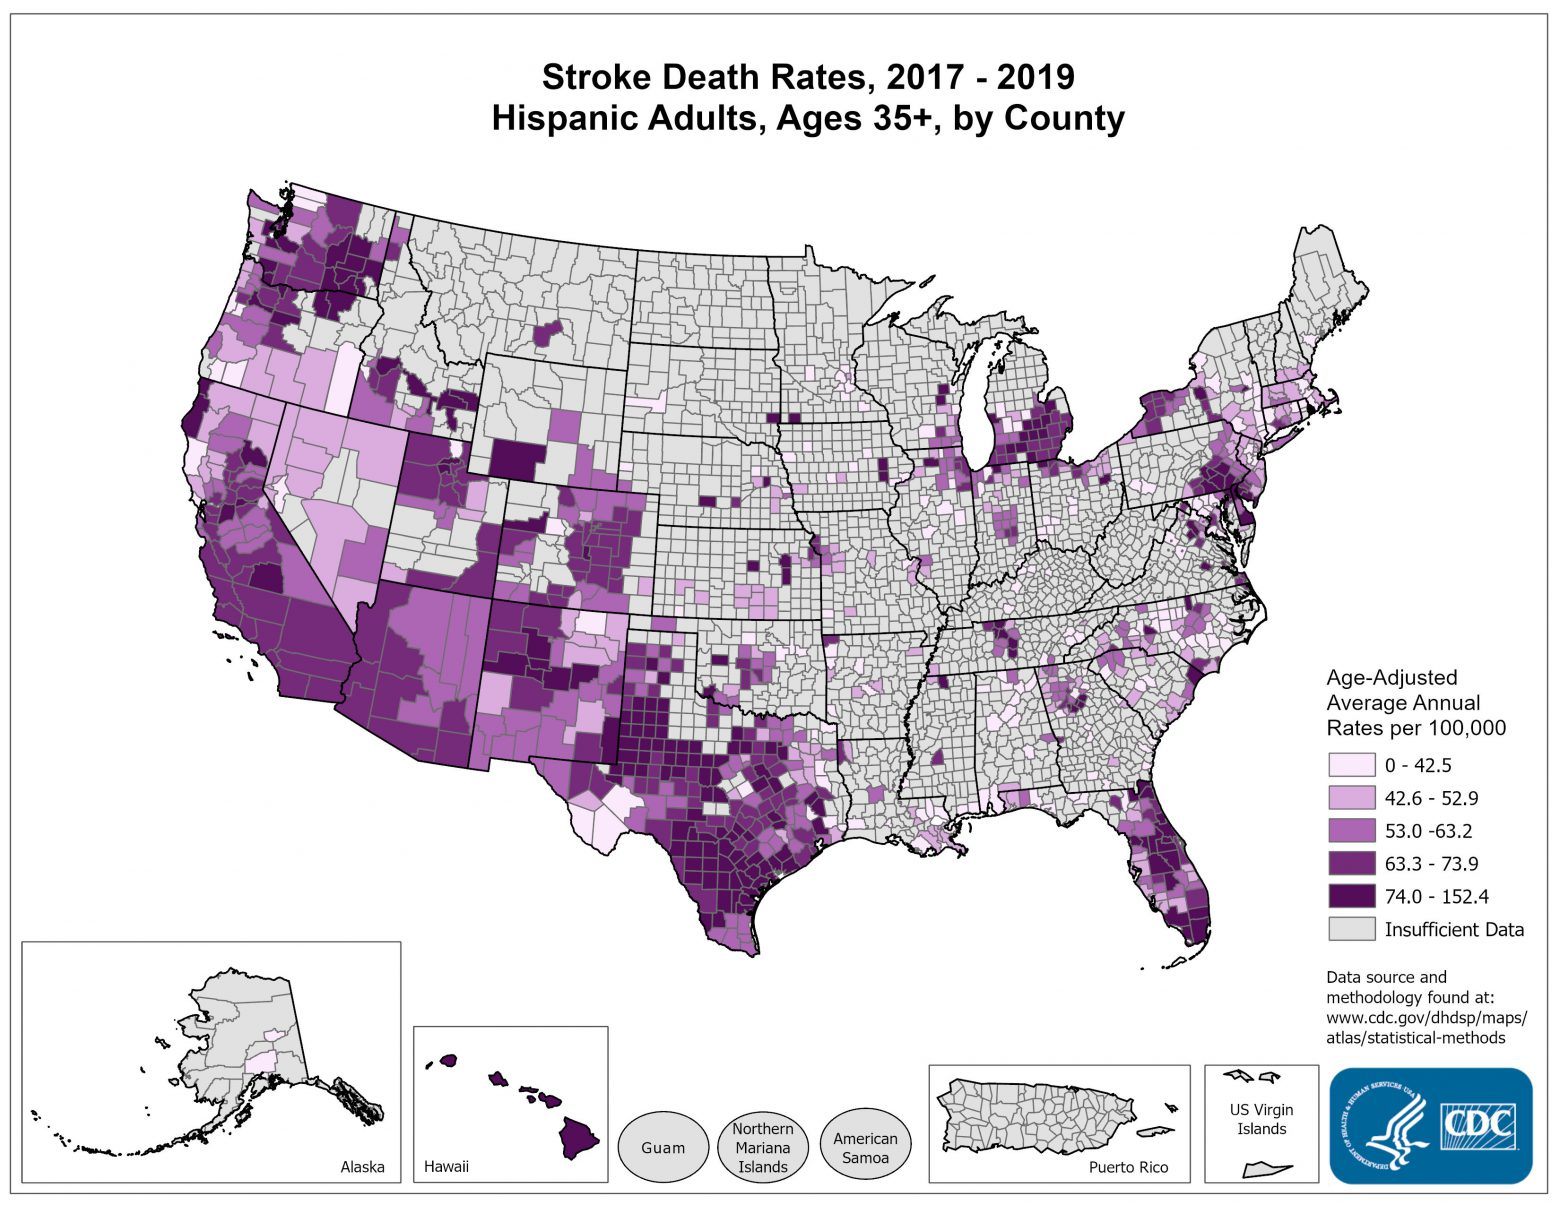 Stroke Death Rates for 2011 through 2013 for Hispanics Aged 35 Years and Older by County. The map shows that concentrations of counties with the highest stroke death rates - meaning the top quintile - are located primarily in Hawaii and Texas. Pockets of high-rate counties also are found in Colorado, Oklahoma, and Indiana.